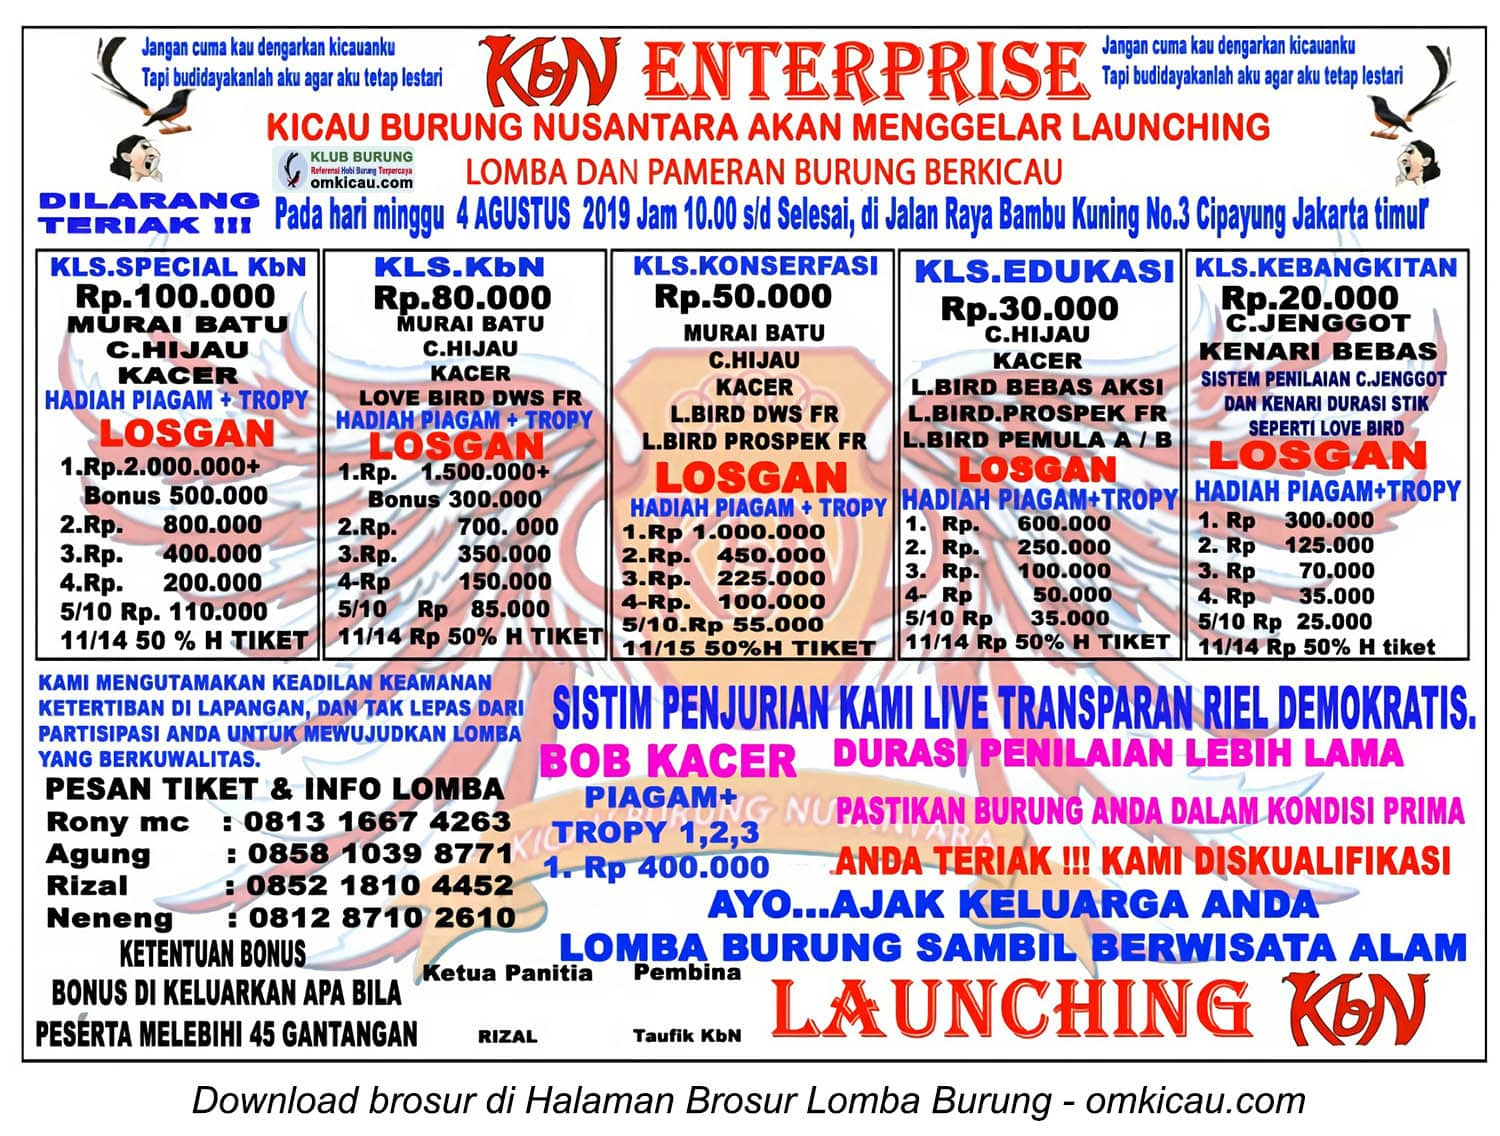 Launching KbN Enterprise